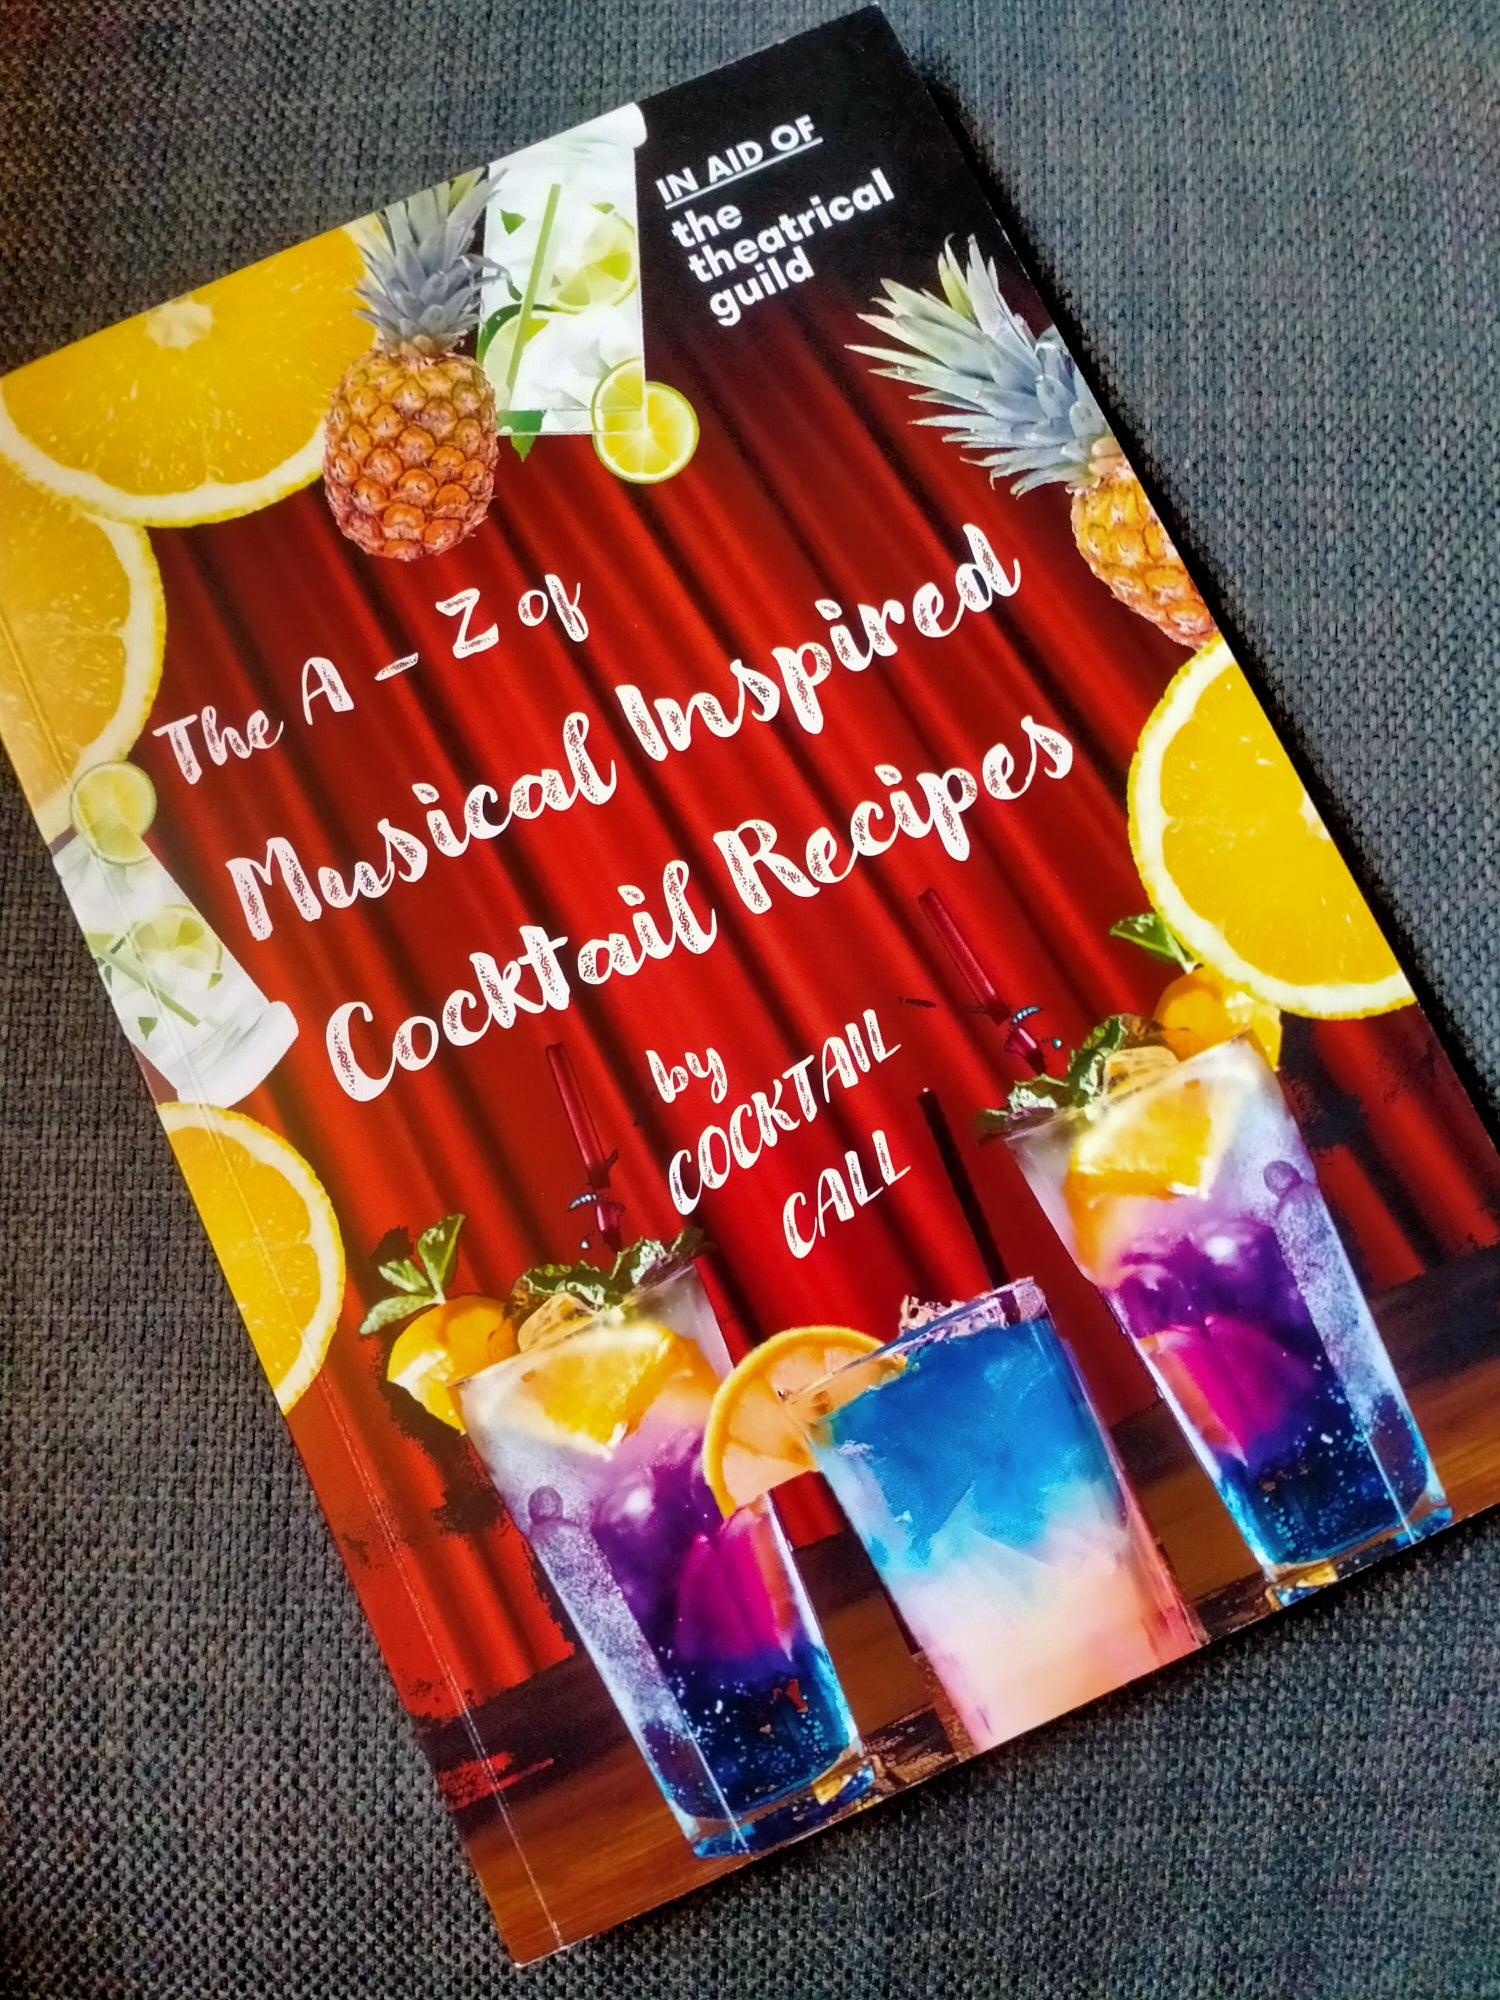 The A-Z of Musical inspired Cocktail Recipes (Physical Copy)